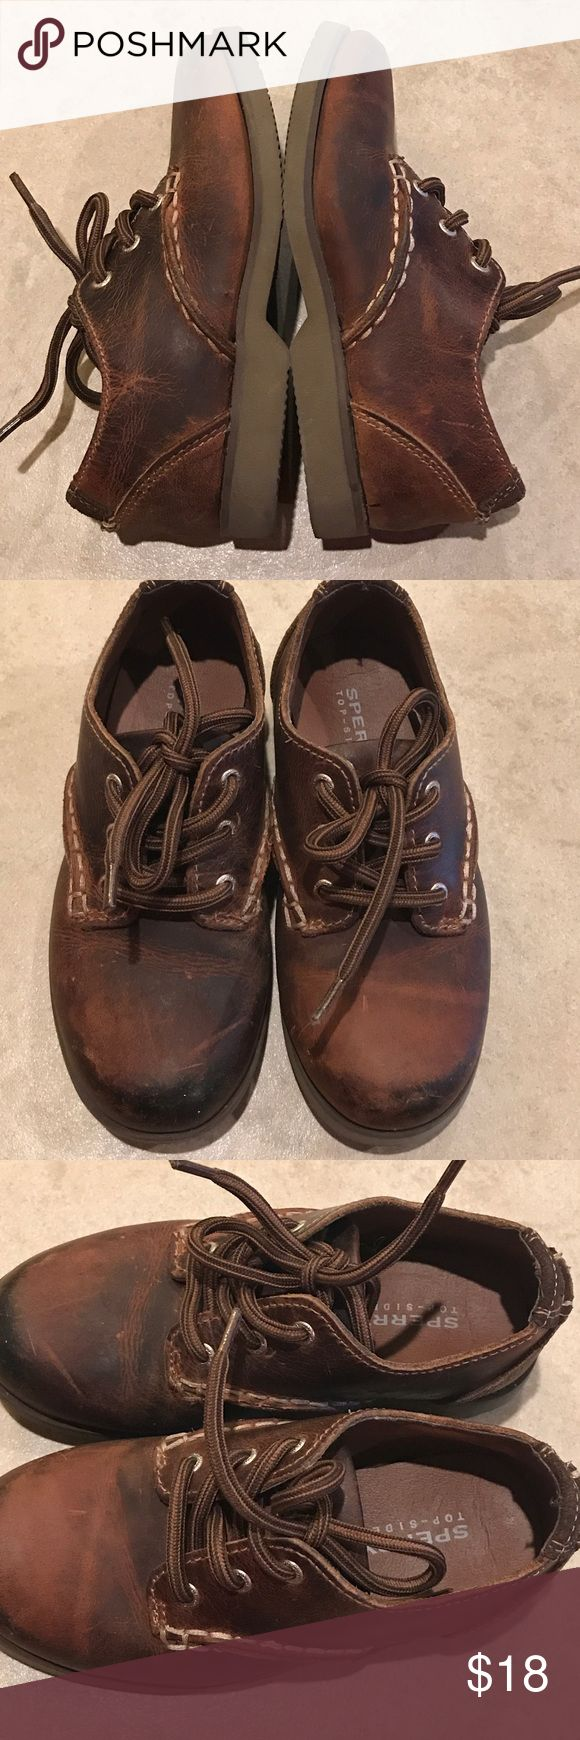 Boys Sperry Top-Sider Used- Boys, size 11. Sperry Top-Sider Sperry Top-Sider Shoes Dress Shoes